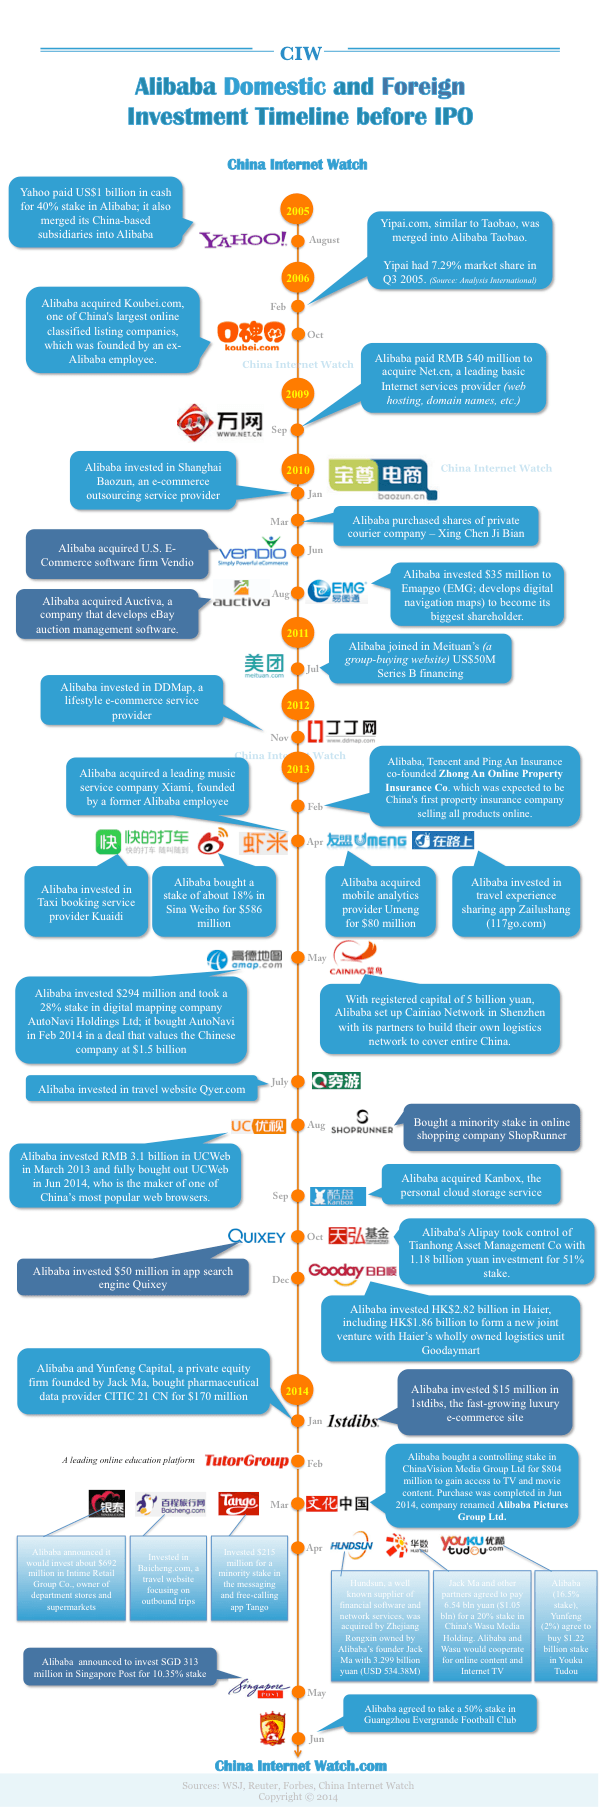 Alibaba Investment Timeline Since 2005 Before IPO — China